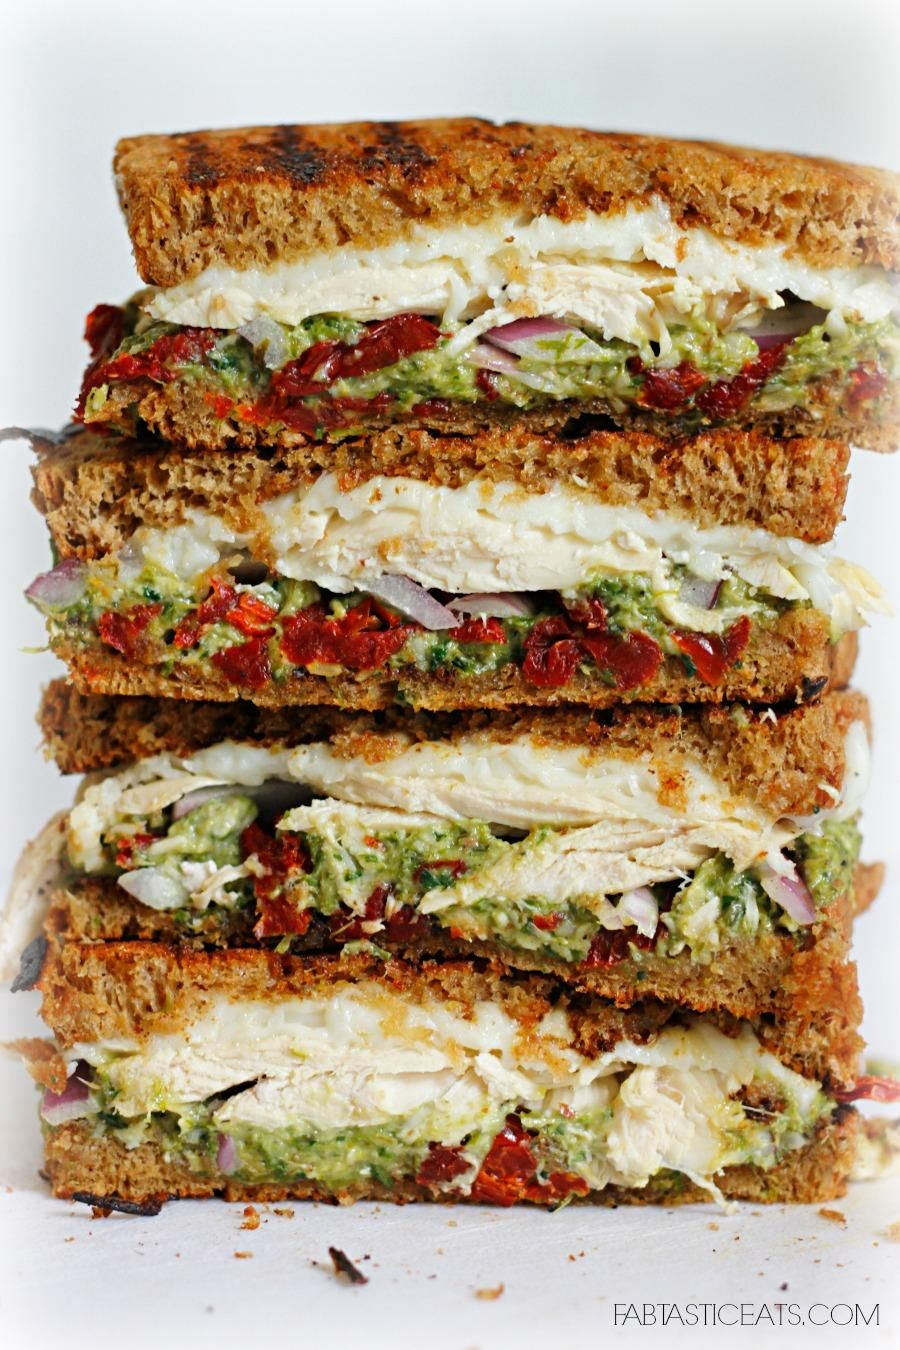 The Best Sandwich You'll Ever Eat: Chicken, Sun-dried